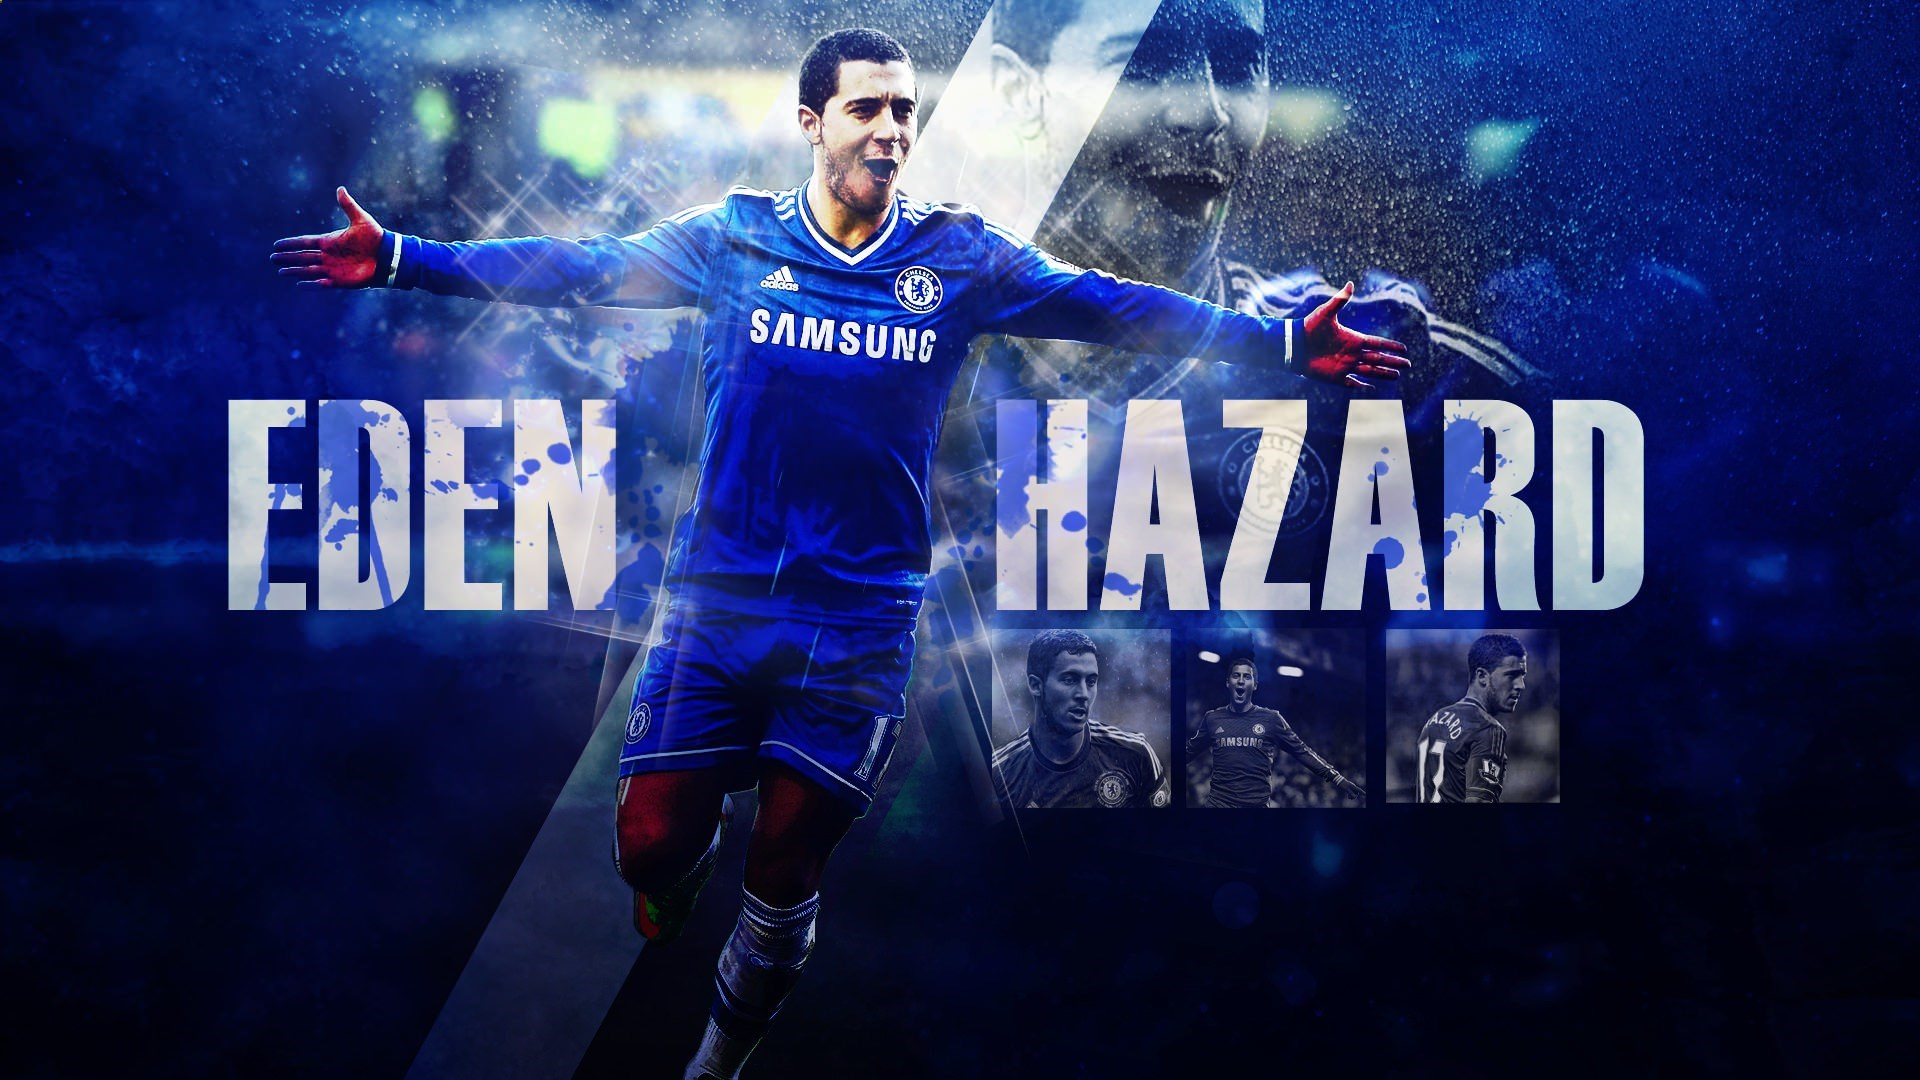 Eden-Michael-Hazard-is-a-Belgian-professional-footballer-who-plays-for-Chelsea-and-the-Belgium-natio-wallpaper-wpc9004636